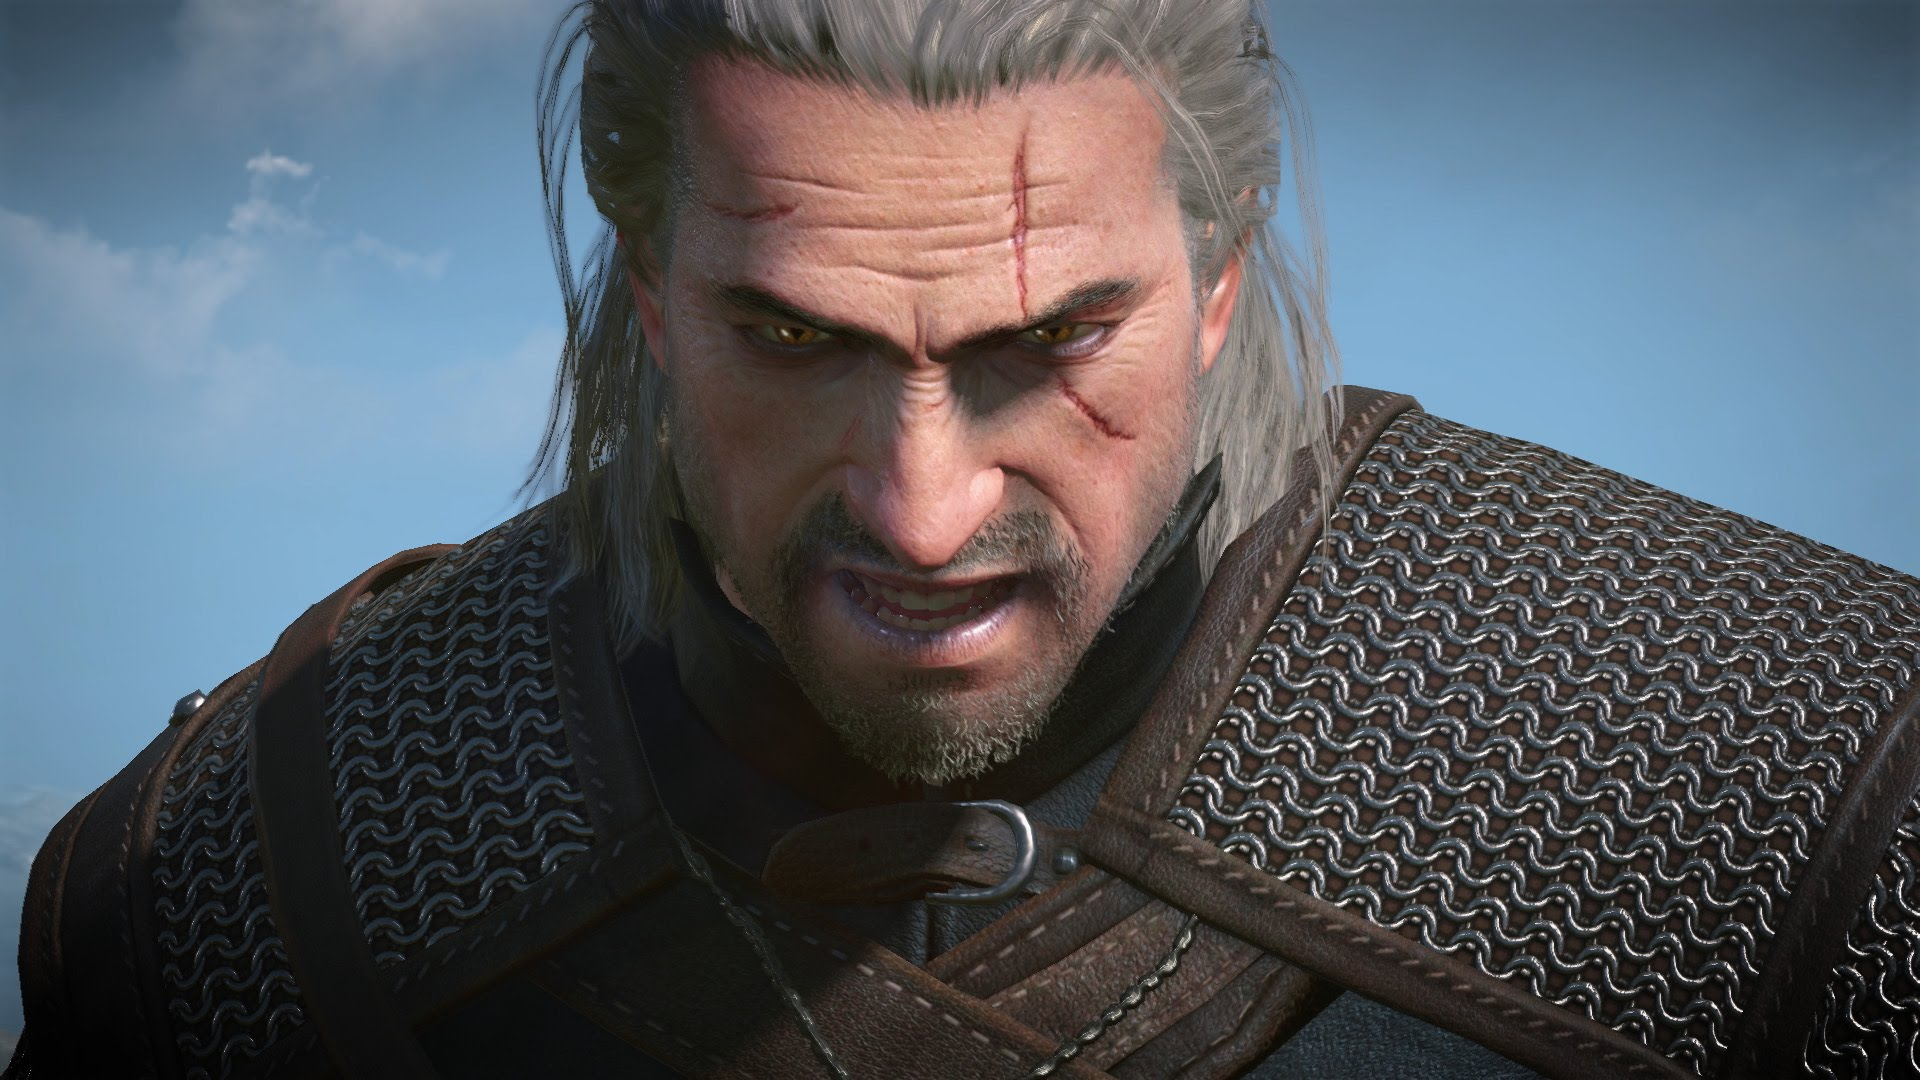 The Witcher 3: Wild Hunt - Game Of The Year Edition | Announce trailer